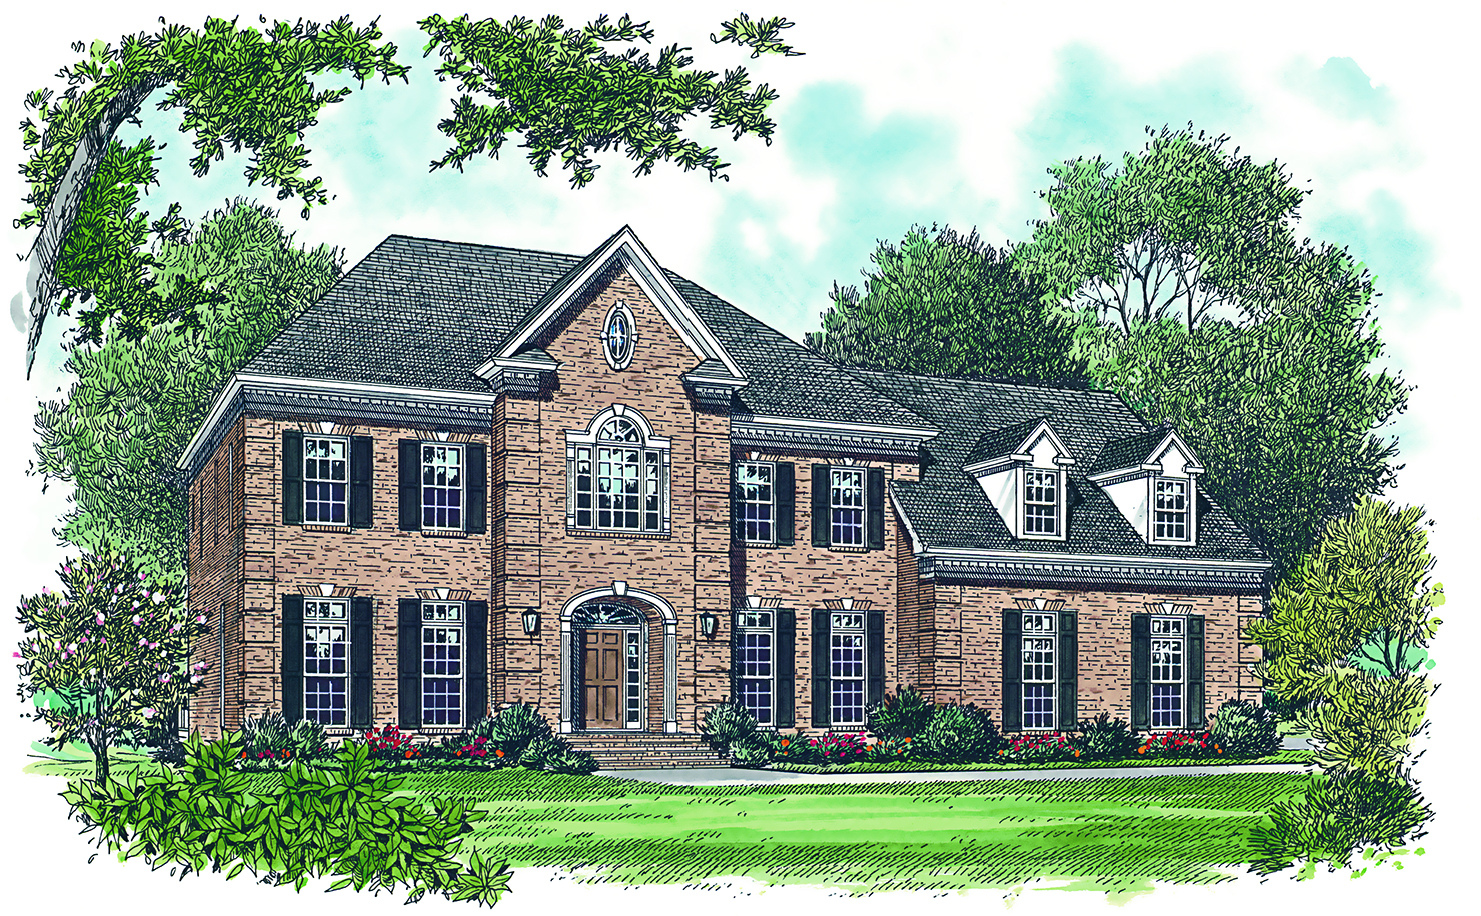 3256 Sq Ft Georgian House Plan 180 1017 4 Bedrm Home Theplancollection